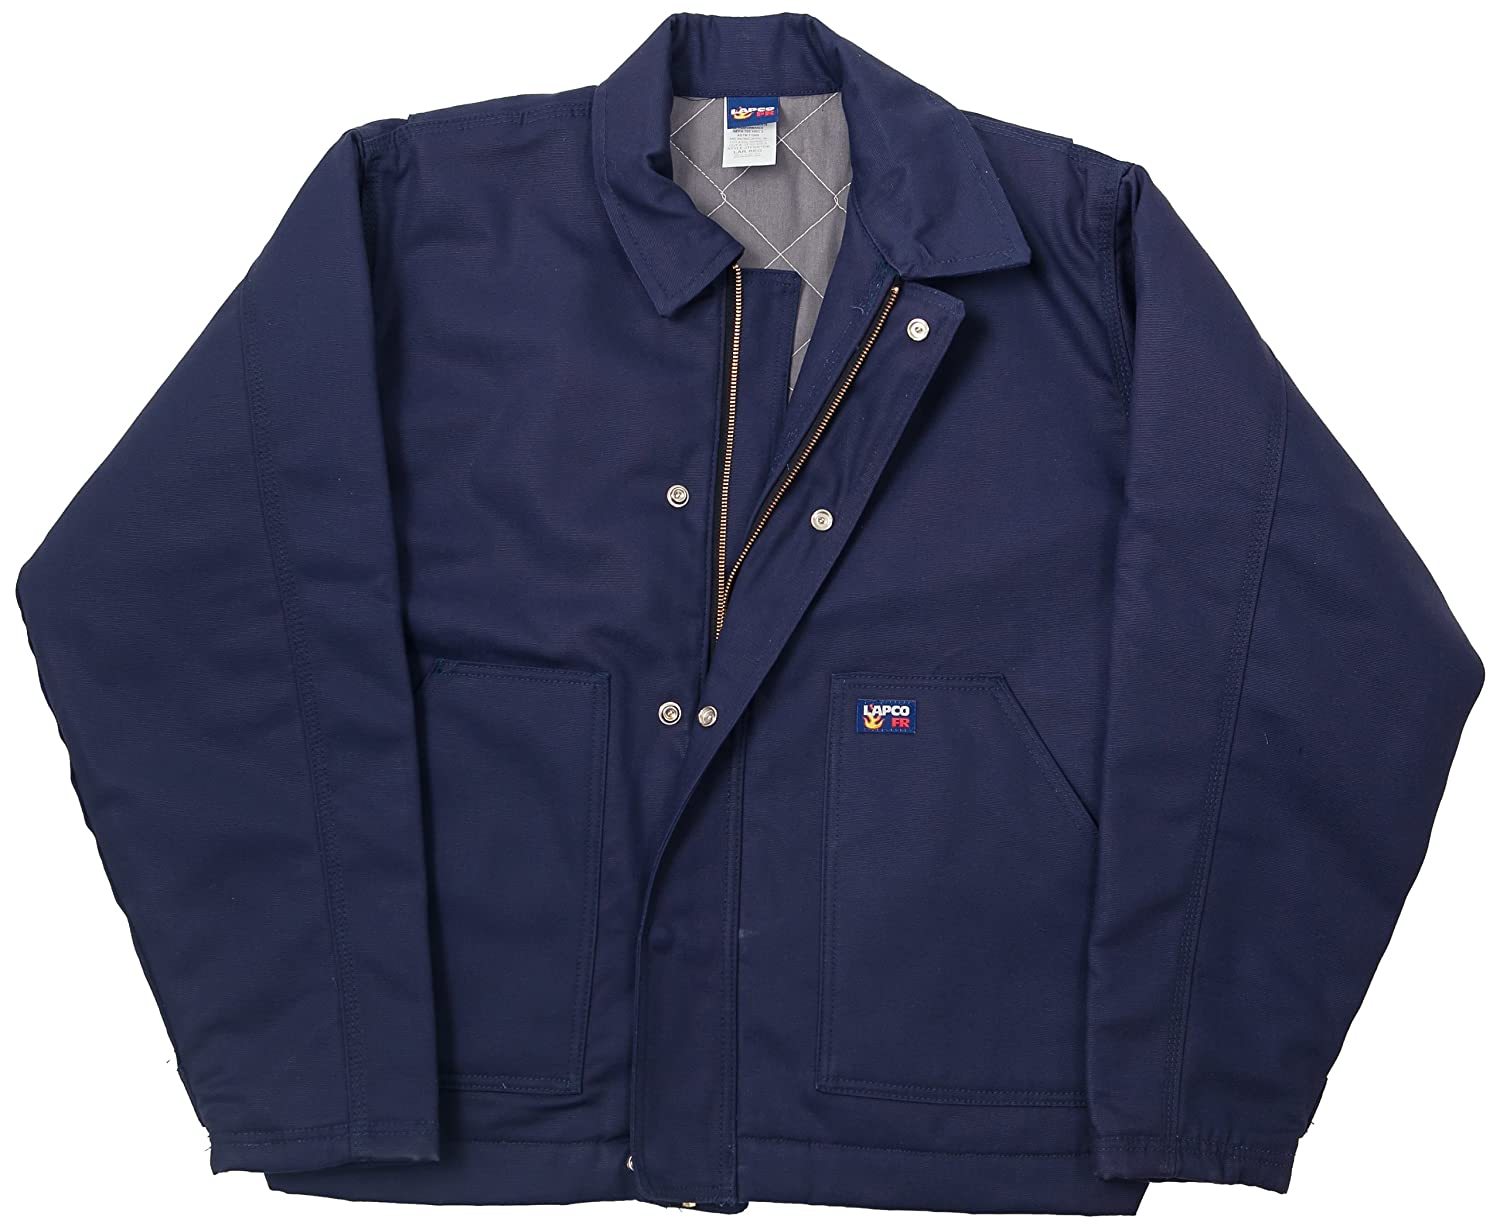 - LAPCO JTFRNYDK-2XL RG 12-Ounce Flame Resistant Duck Insulated Jacket, Navy